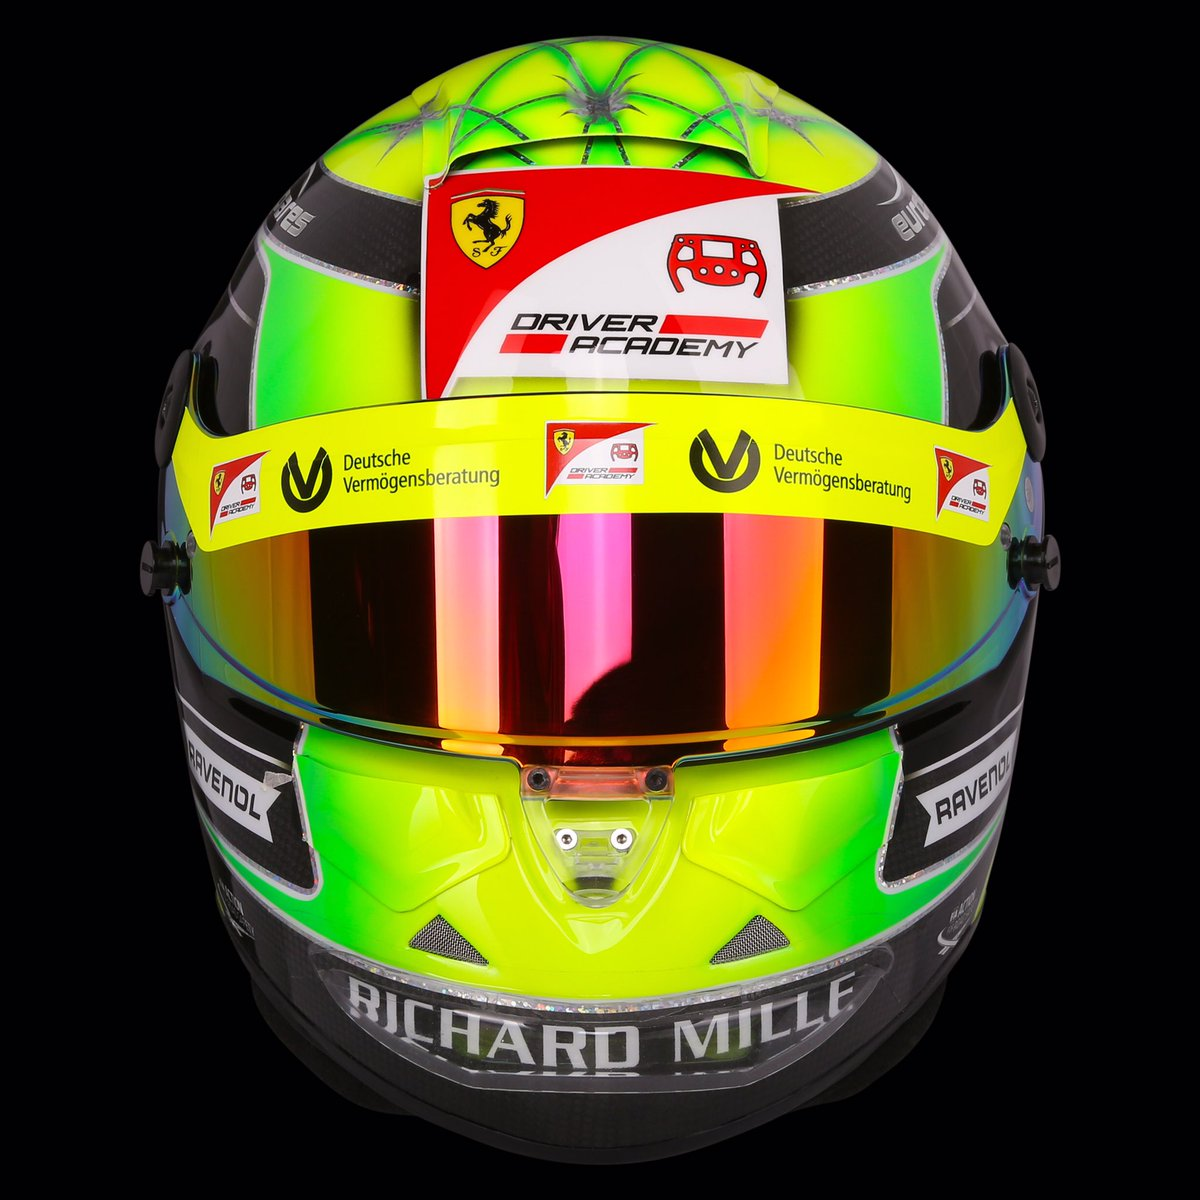 In Pictures Mick Schumacher S Helmet For 2019